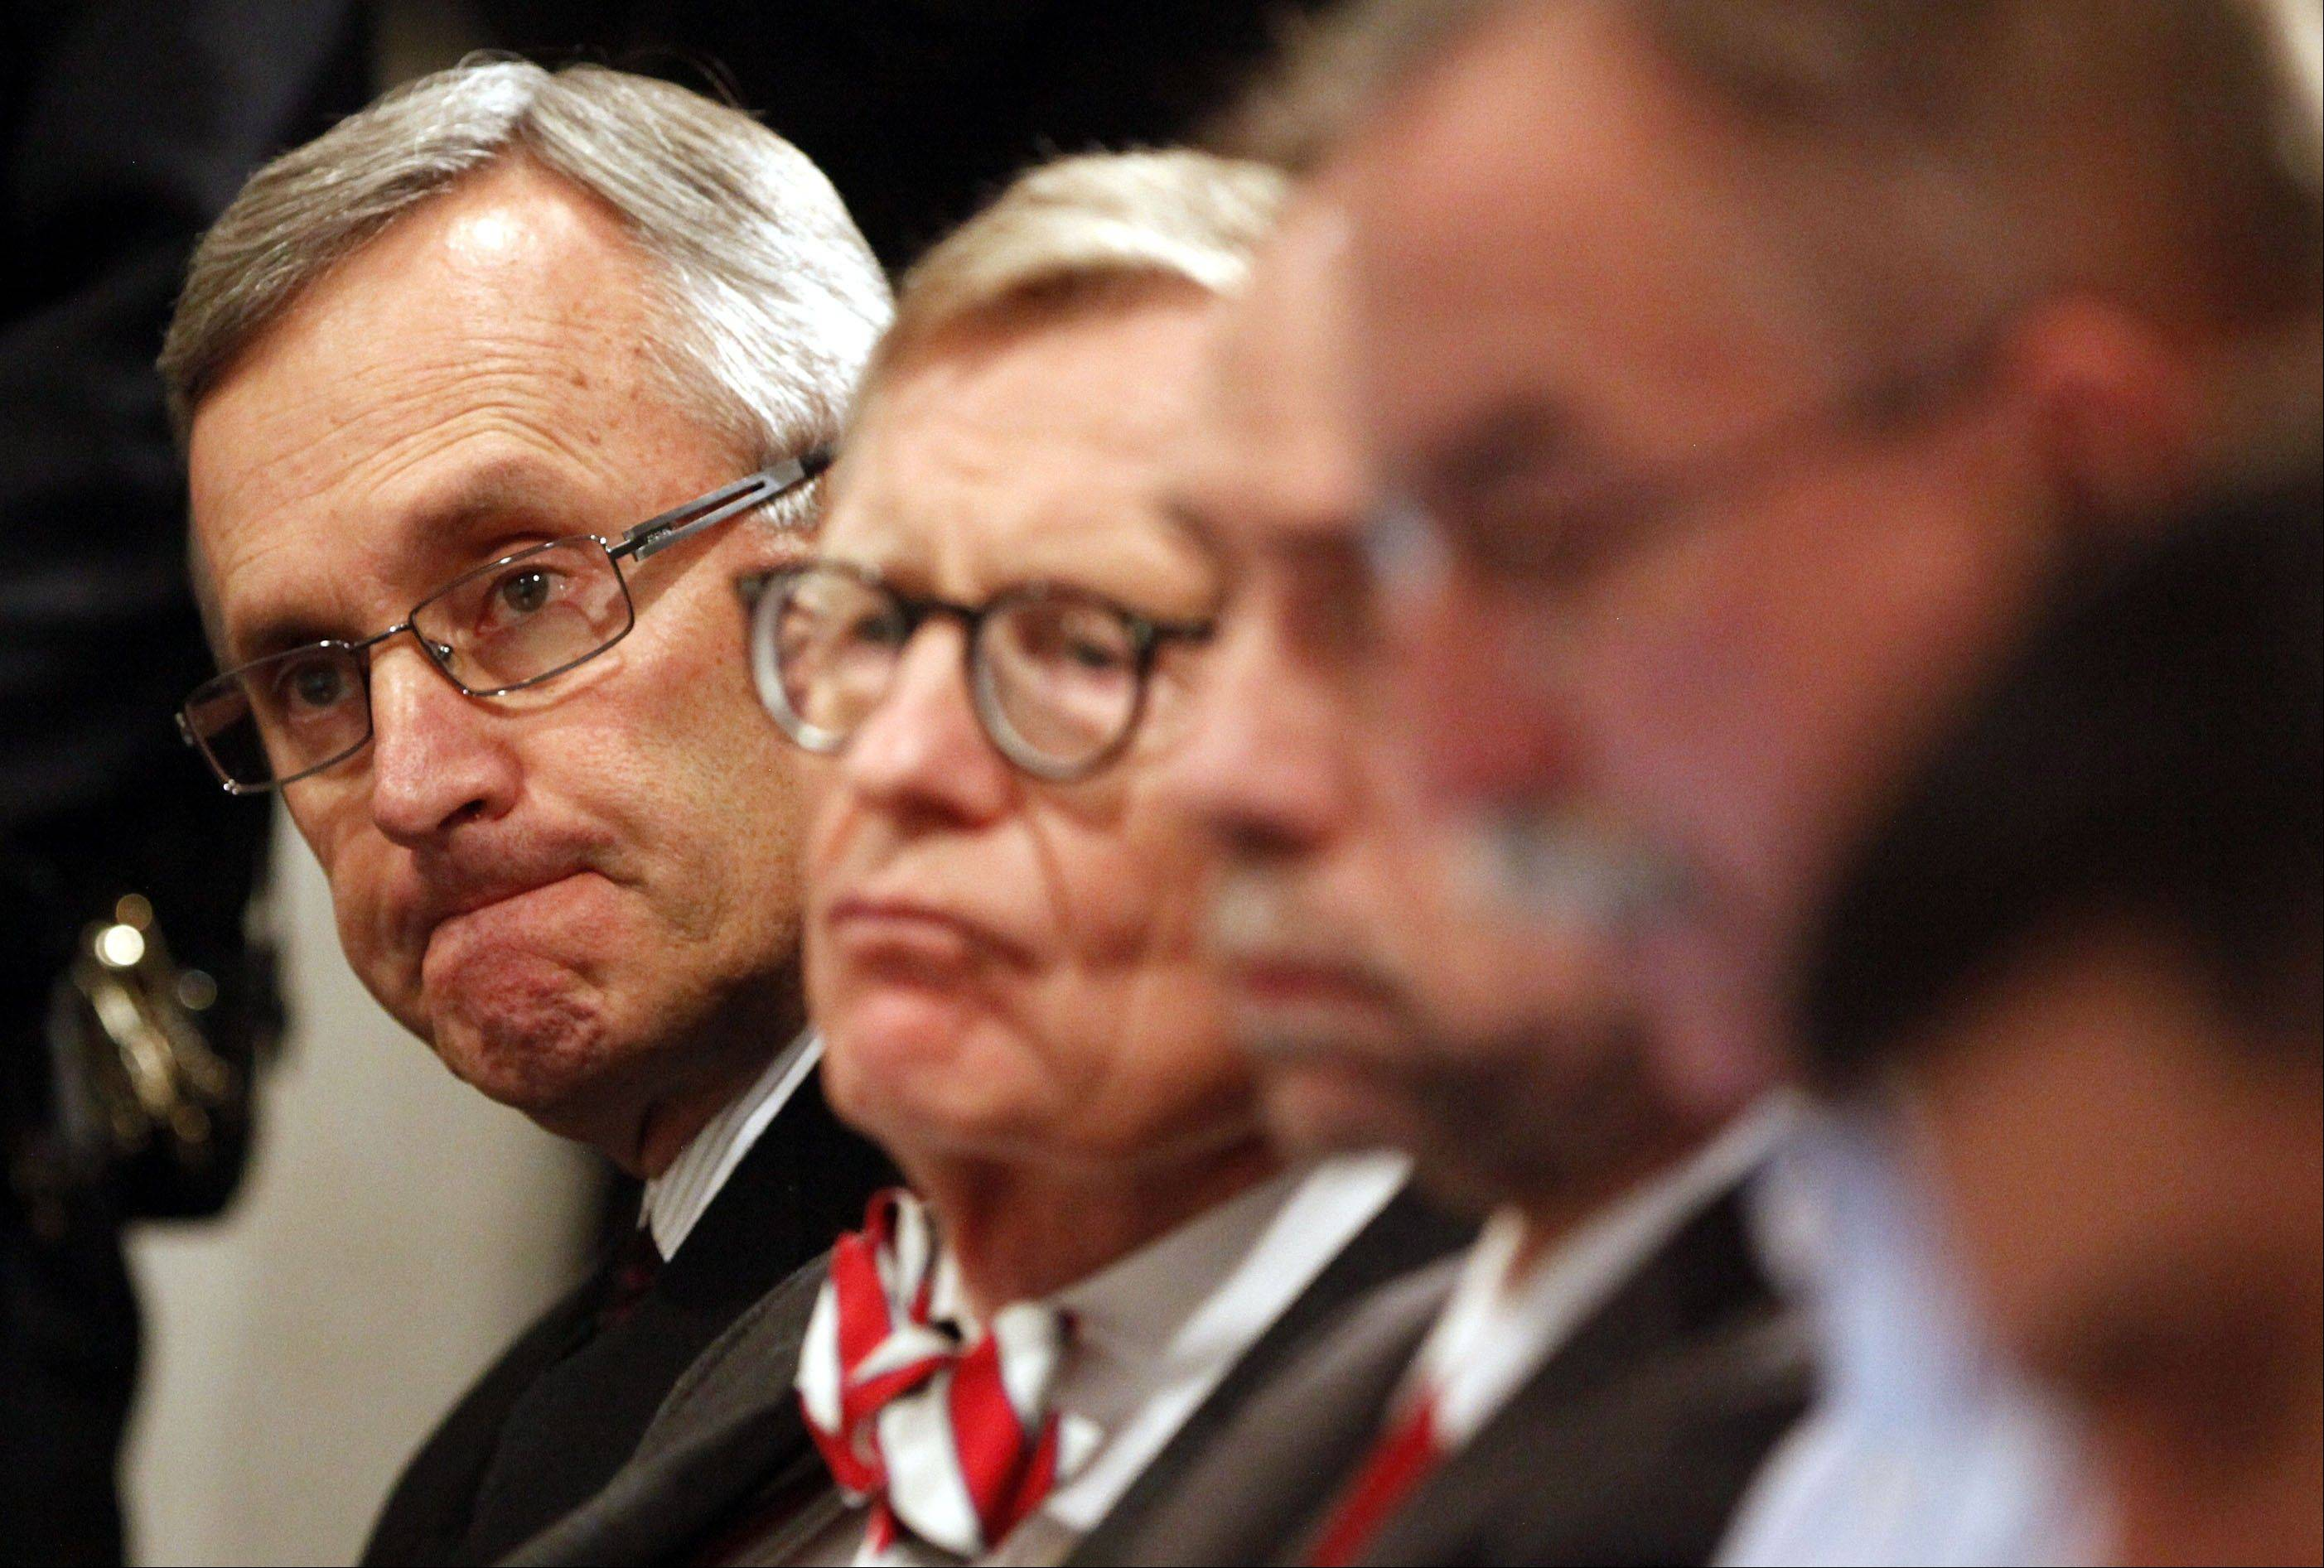 Ohio State football coach Jim Tressel, left, and university President E. Gordon Gee, second from left, listen as athletic director Gene Smith speaks during a news conference in Columbus, Ohio.